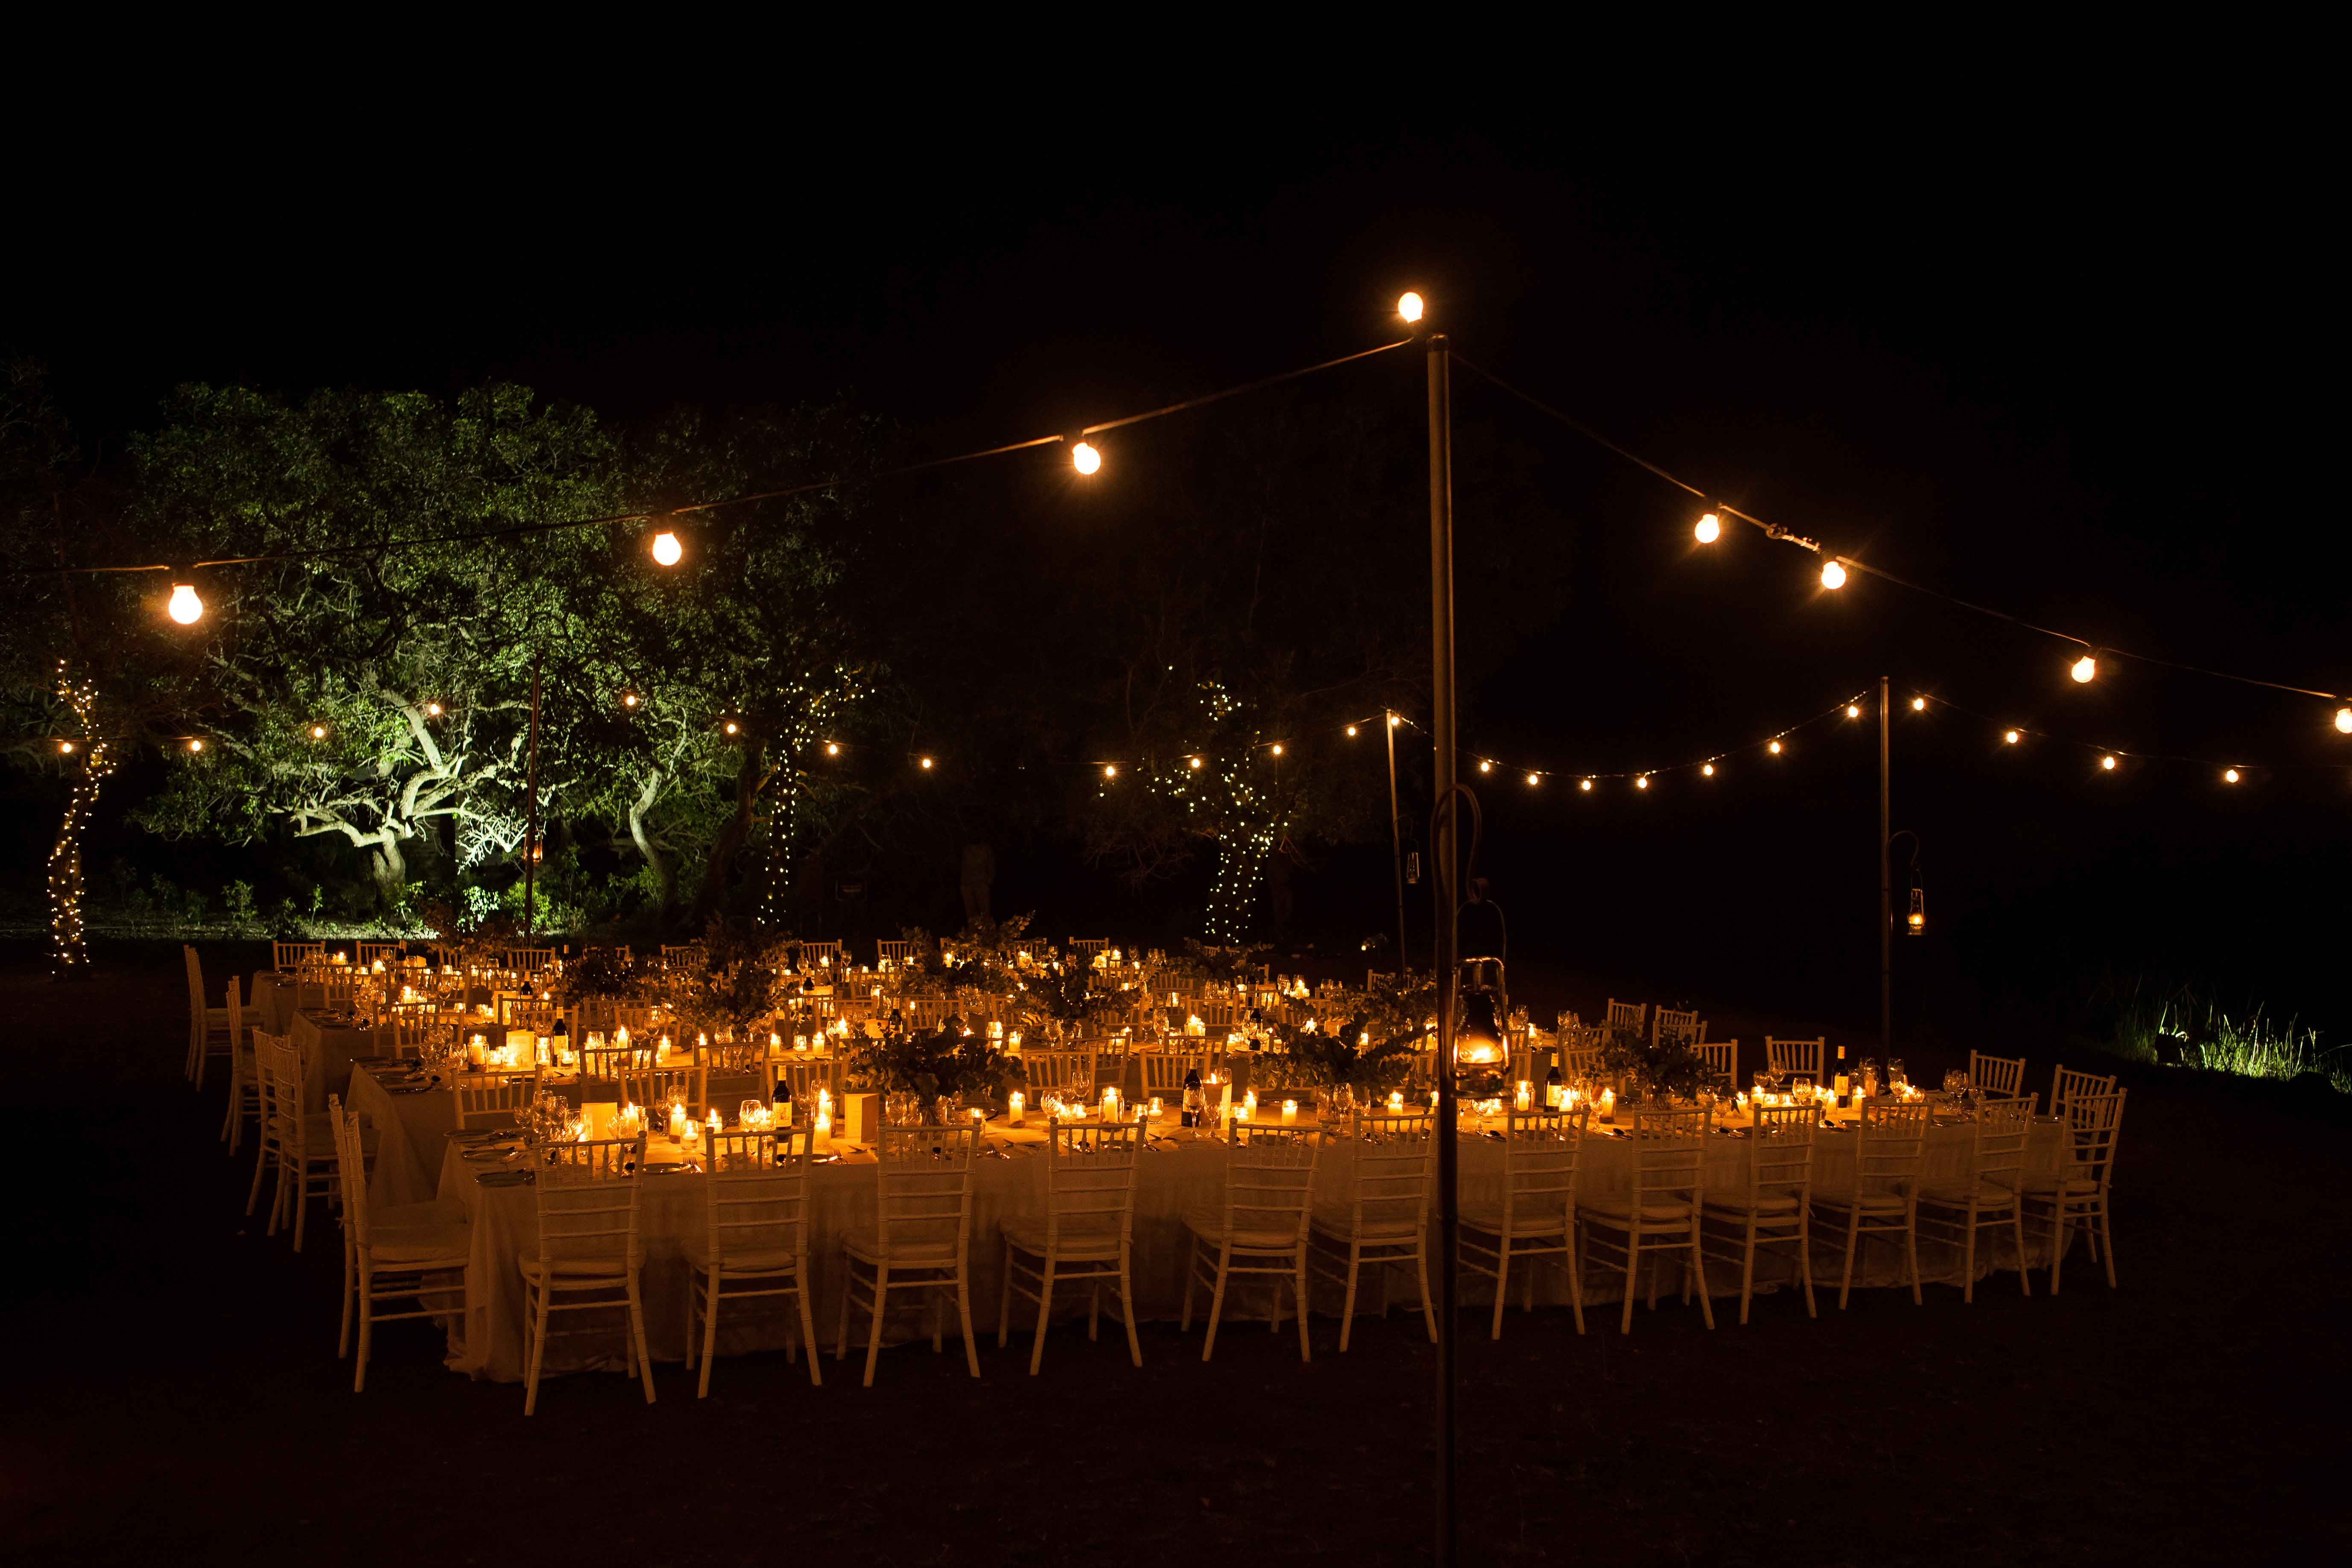 Dimly lit outdoor wedding reception in South Africa